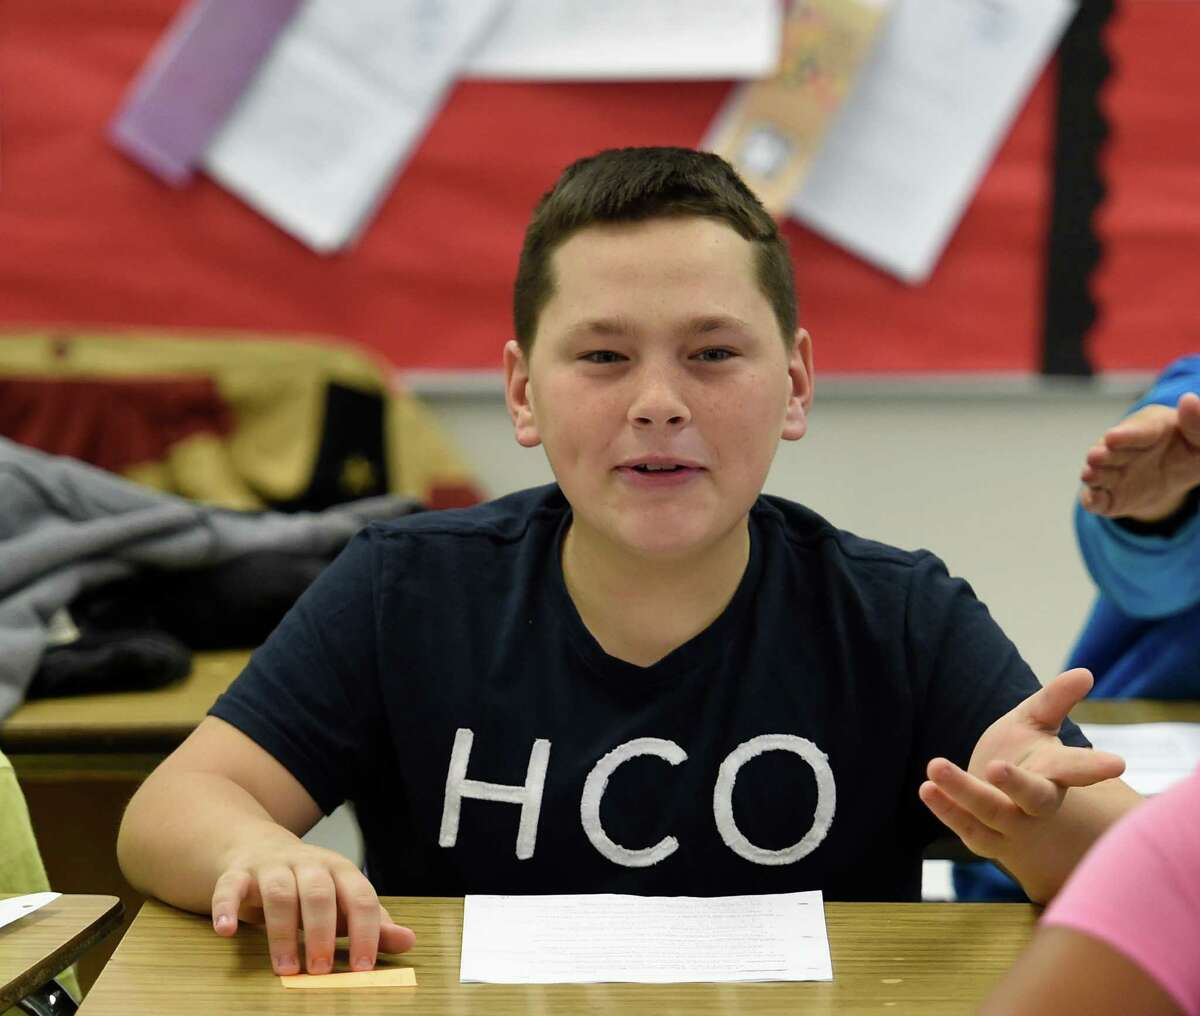 Chad LaBello voices his opinion during Mrs. Stacey Muscato's class discussion of the contrast in thought between the Colonists and their British Governors in her social studies class at the Knickerbacker Middle School Wednesday Dec. 2, 2015 in Troy, N.Y. (Skip Dickstein/Times Union)